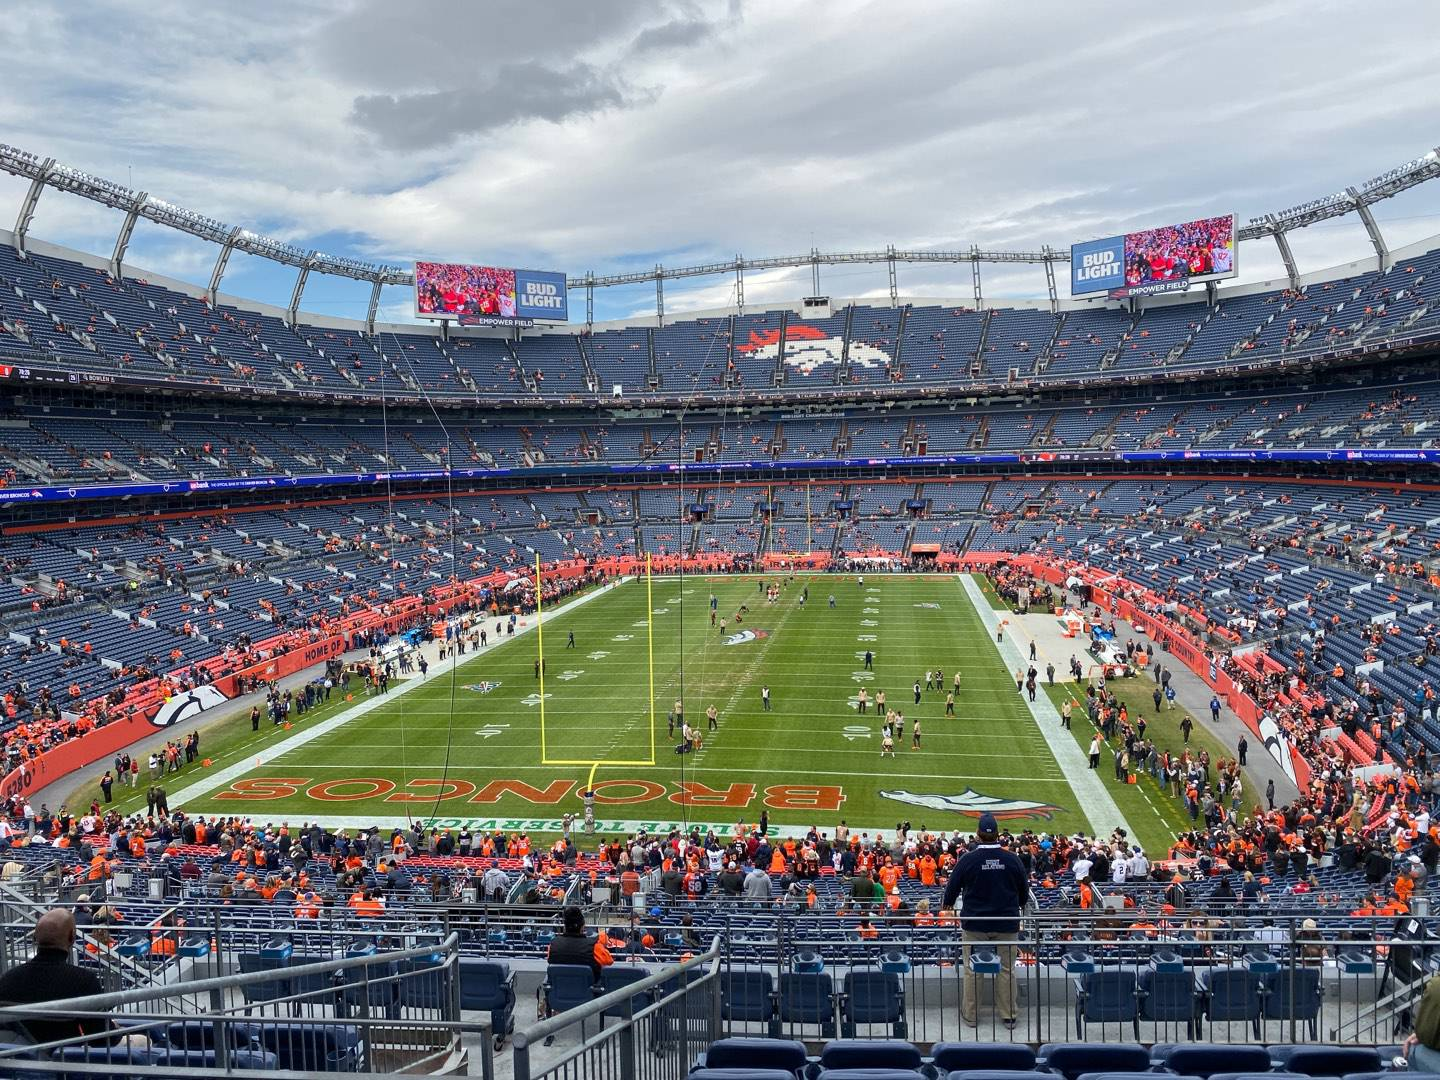 Empower Field at Mile High Stadium Section 231 Row 11 Seat 12